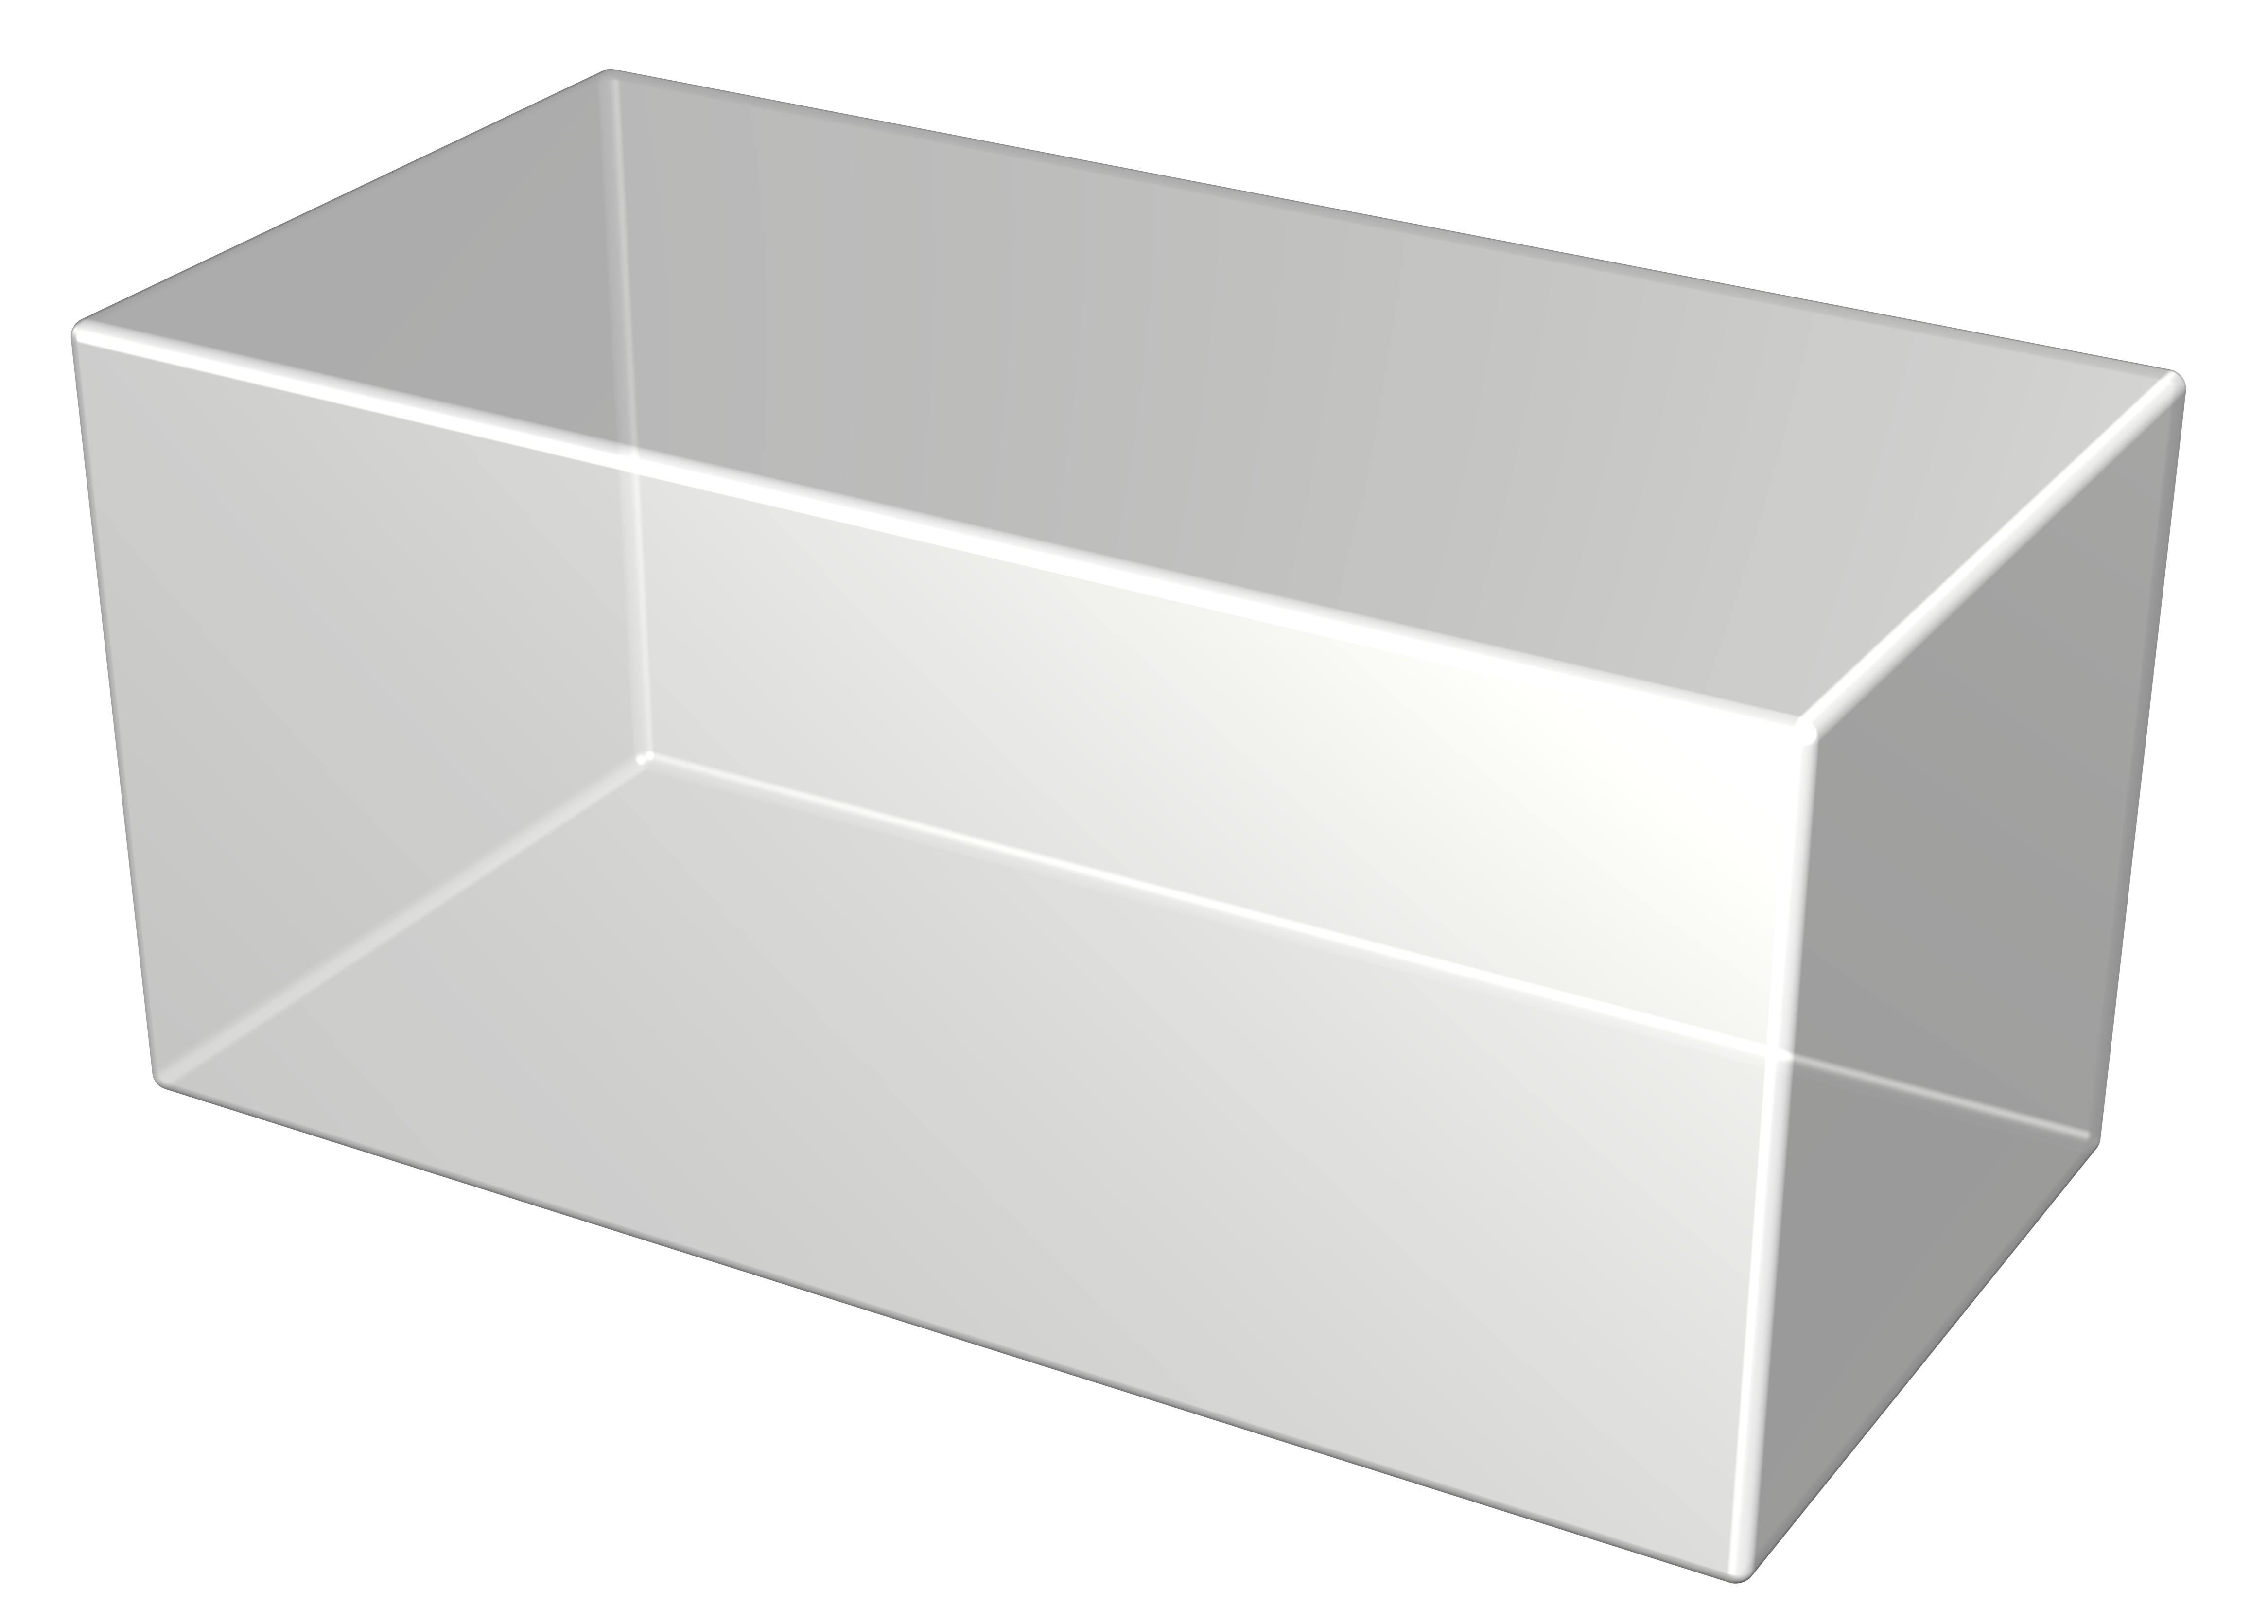 High resolution renderings of transparent boxes ...